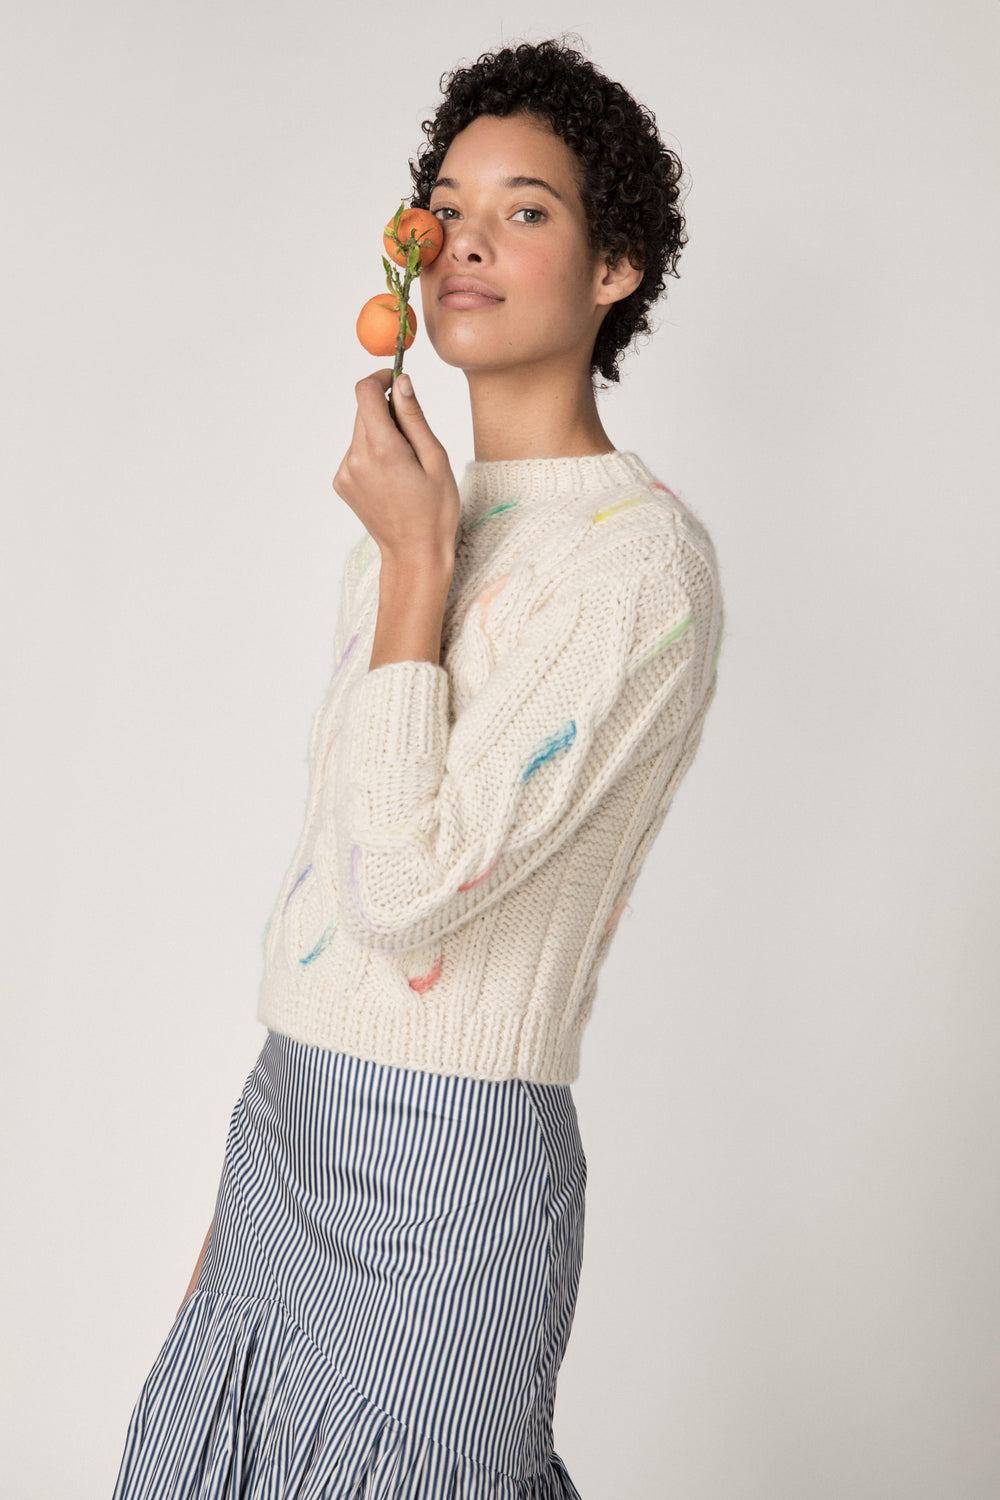 Rosie Assoulin Fall 2019 Knit Brush Stroke Sweater. Traditional cableknit sweater. Needle-felted pastel brush detail. Slim fit. Cream. 100% Baby Alpaca Wool. Sizes XS - L.